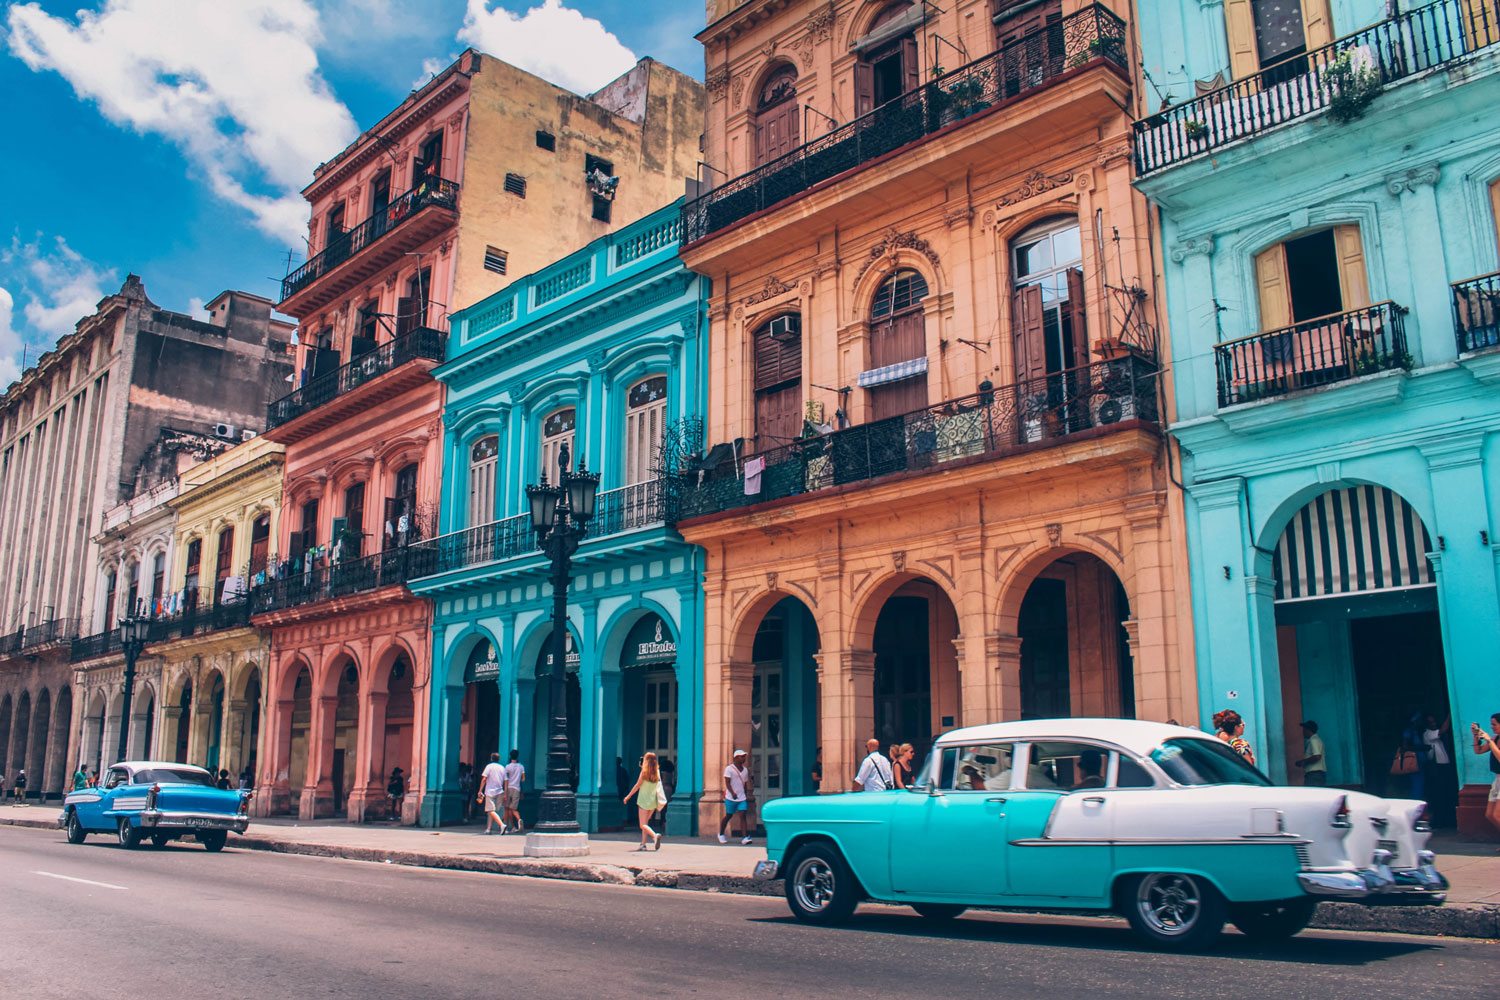 Havana celebrates its 500th birthday in 2019. Here is what to expect.